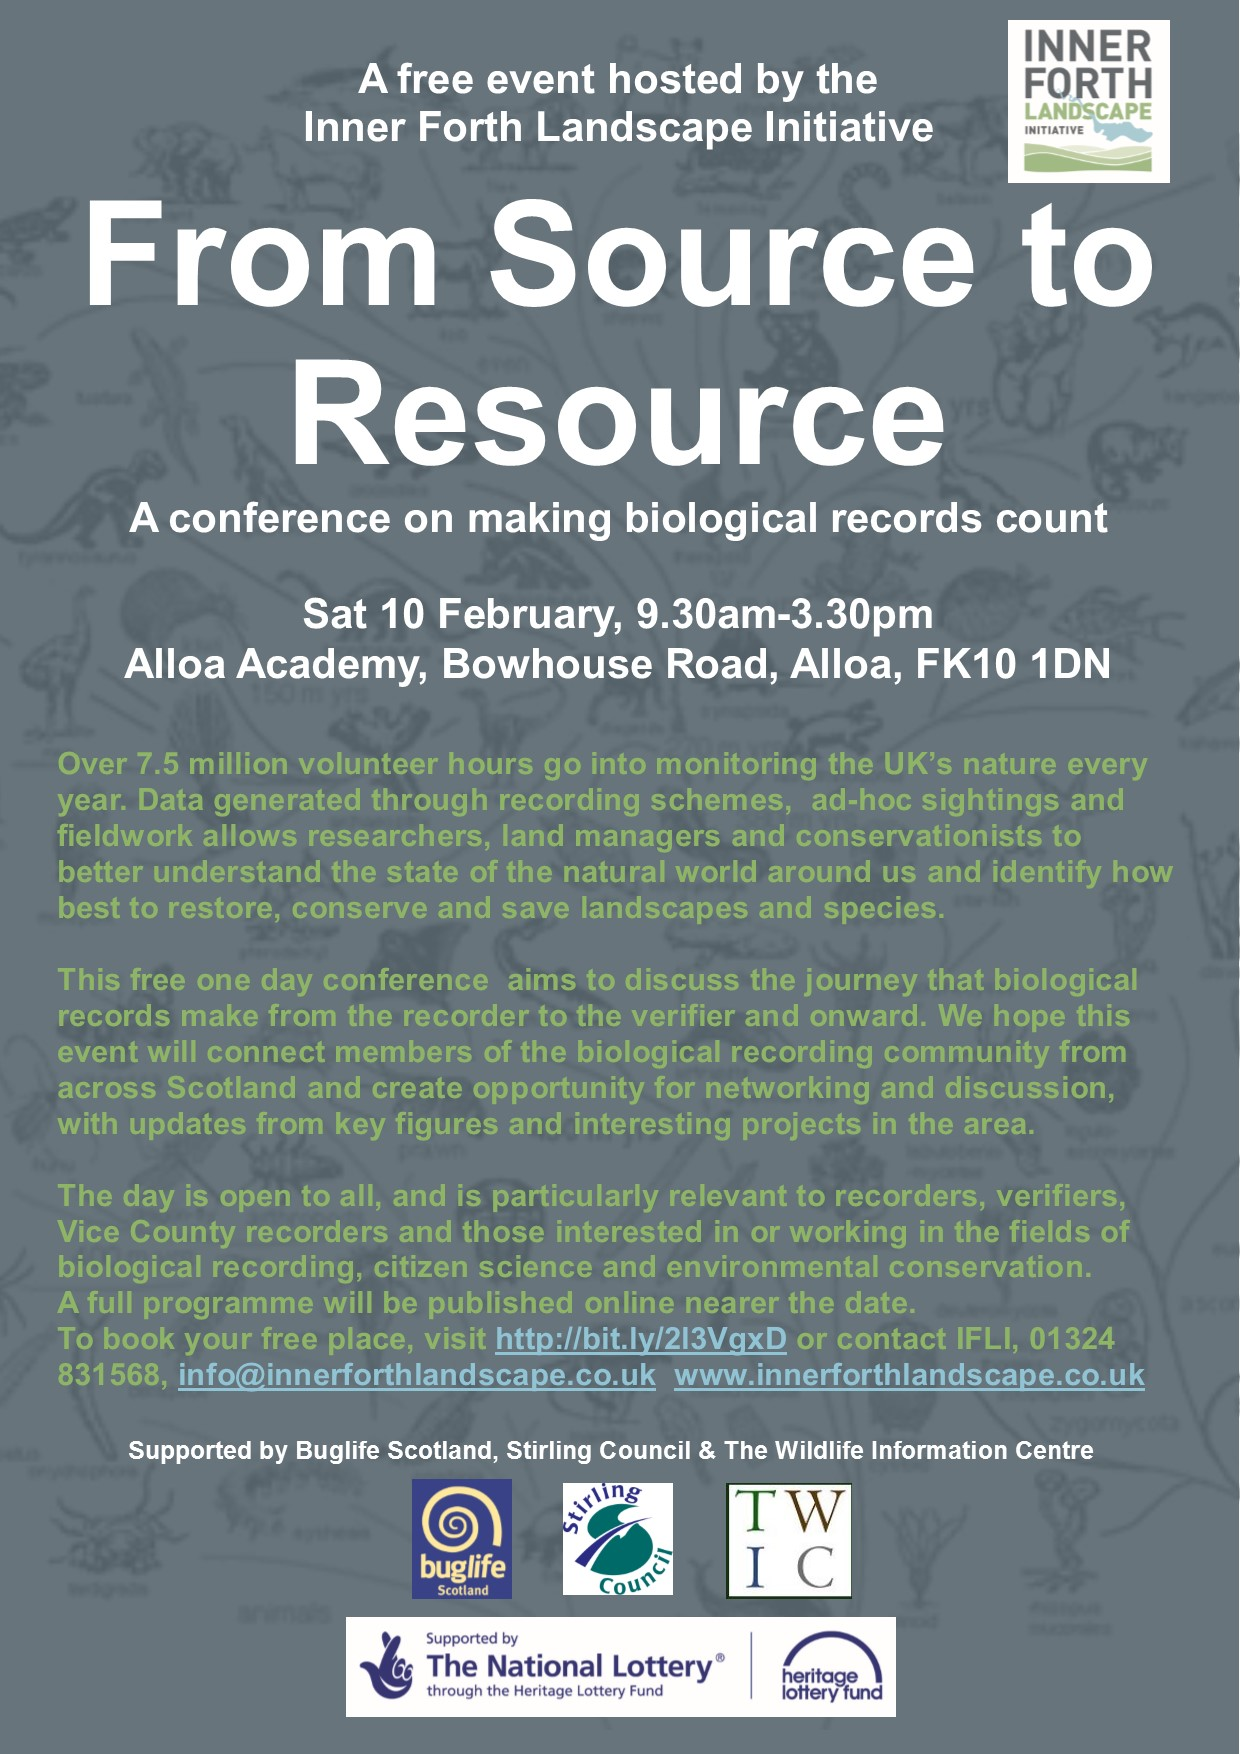 From Source to Resource conference flyer